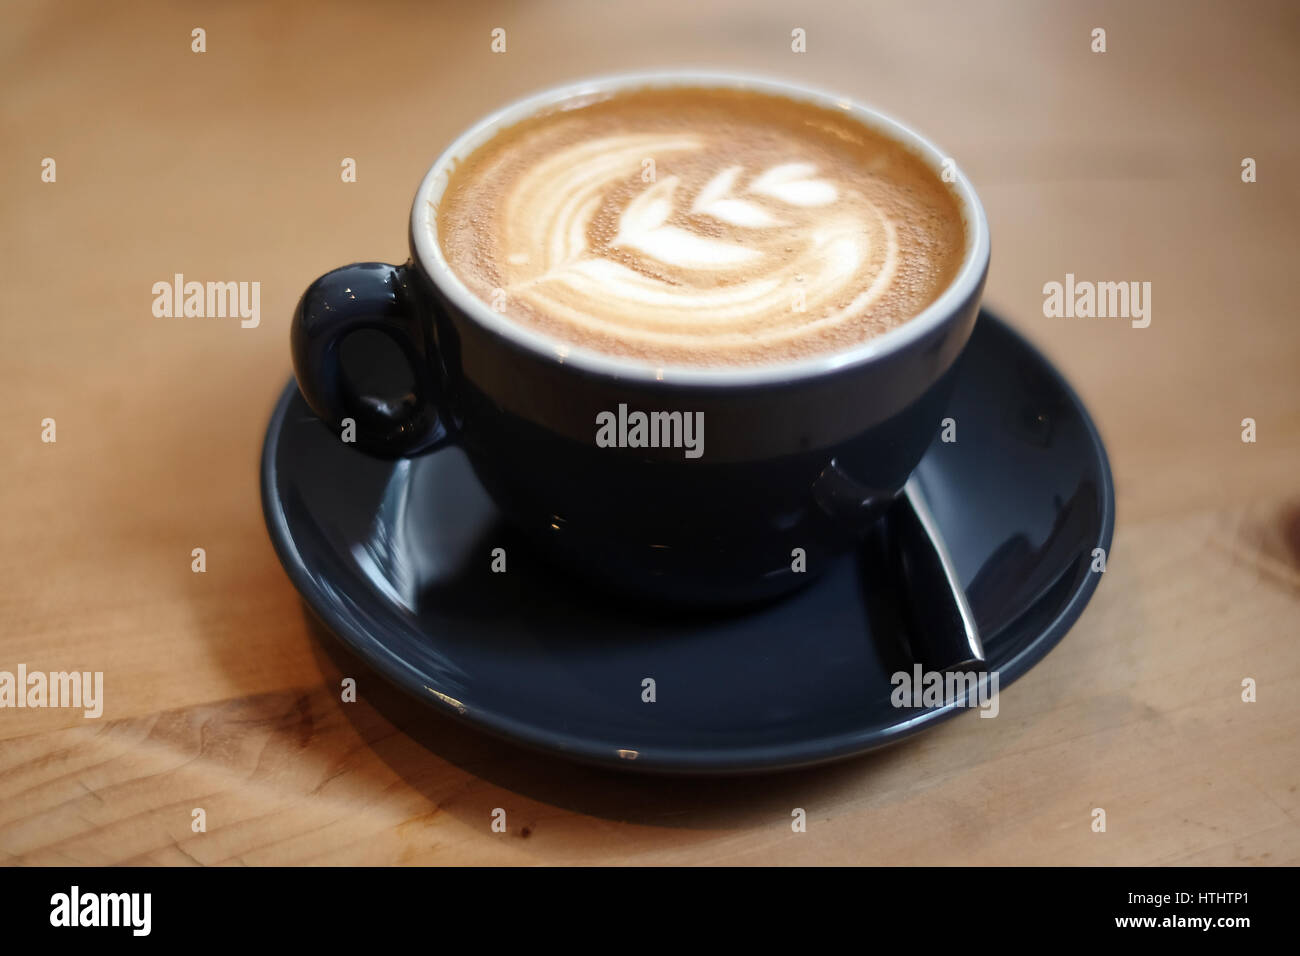 Flat white coffee, in a restaurant, on a wooden table - Stock Image